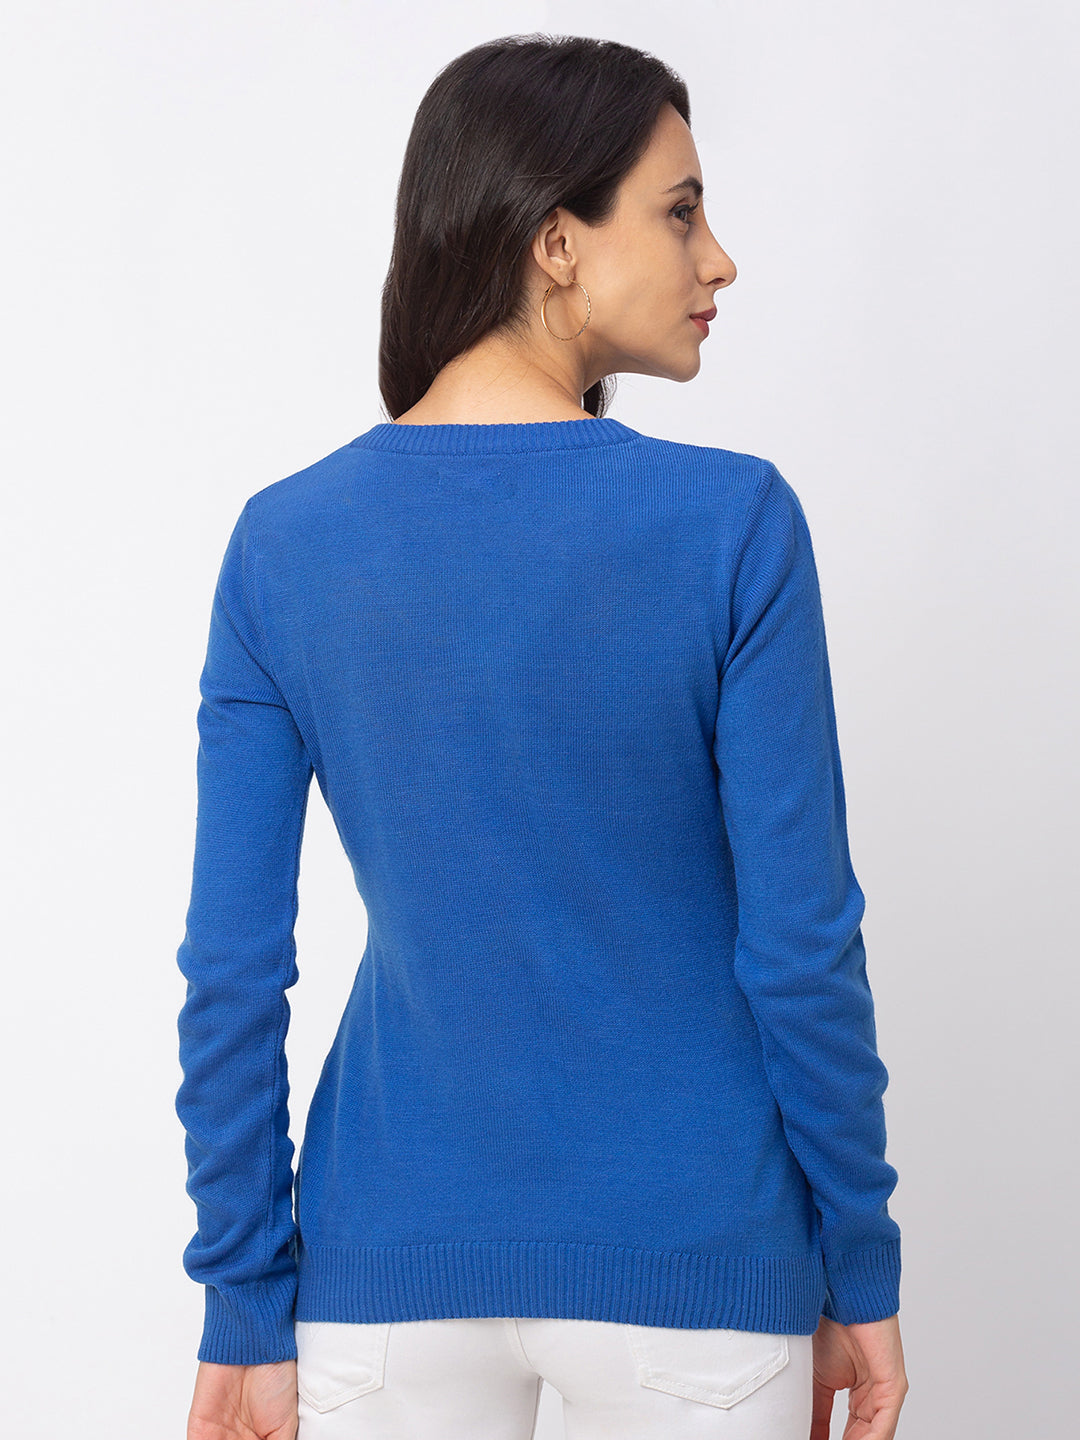 Globus Blue Solid Sweater-3